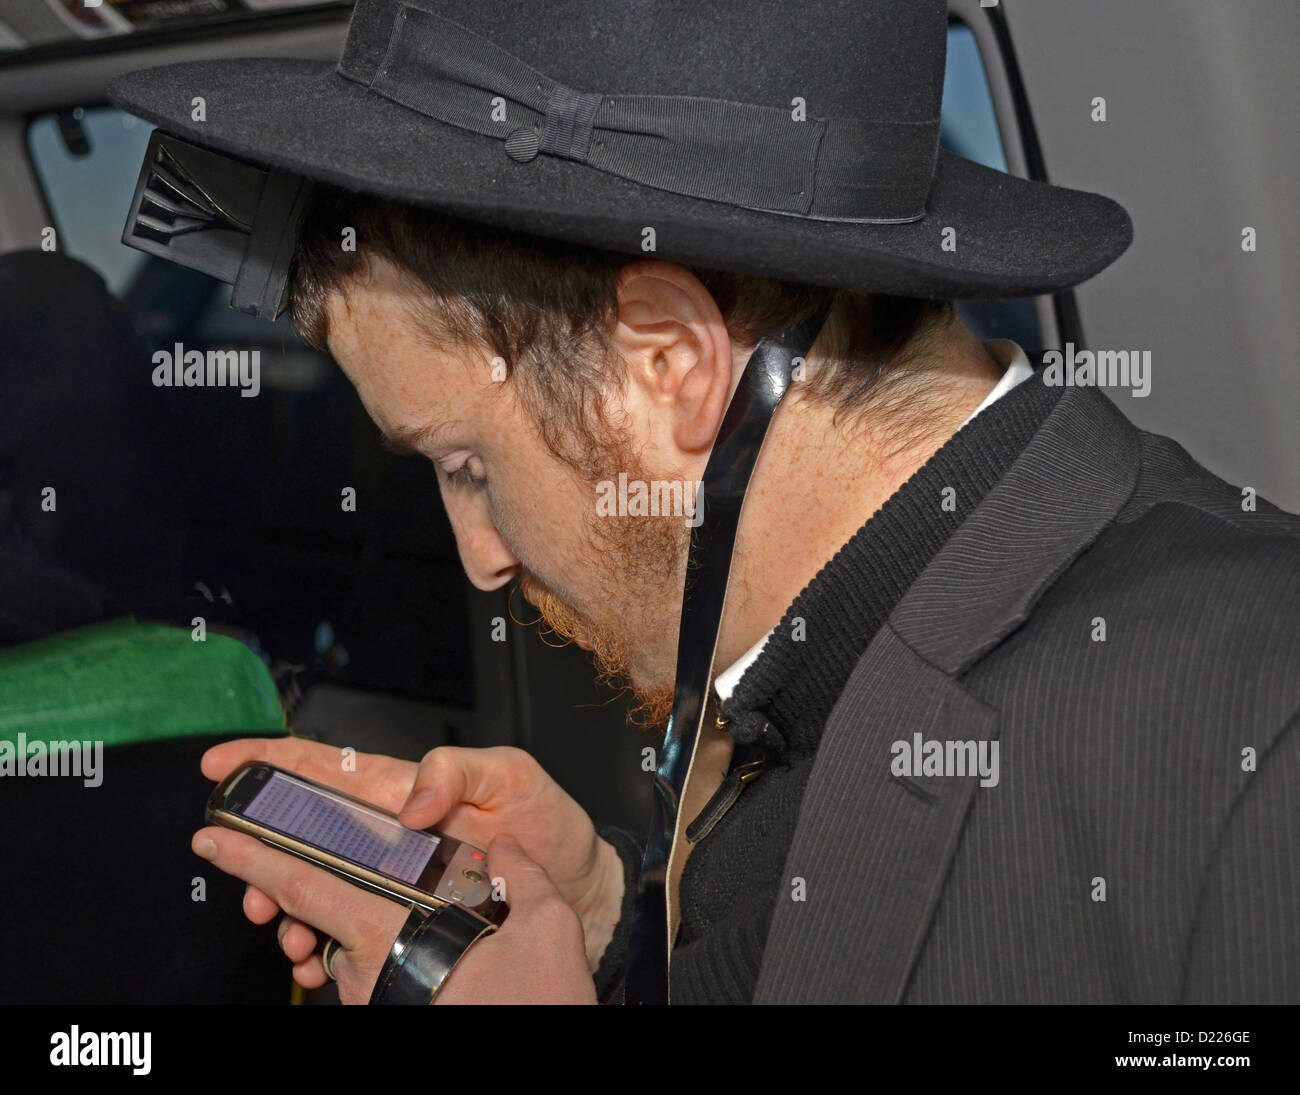 Orthodox Jewish student wearing phylacteries praying in a van while reading his prayers from a blackberry. - Stock Image